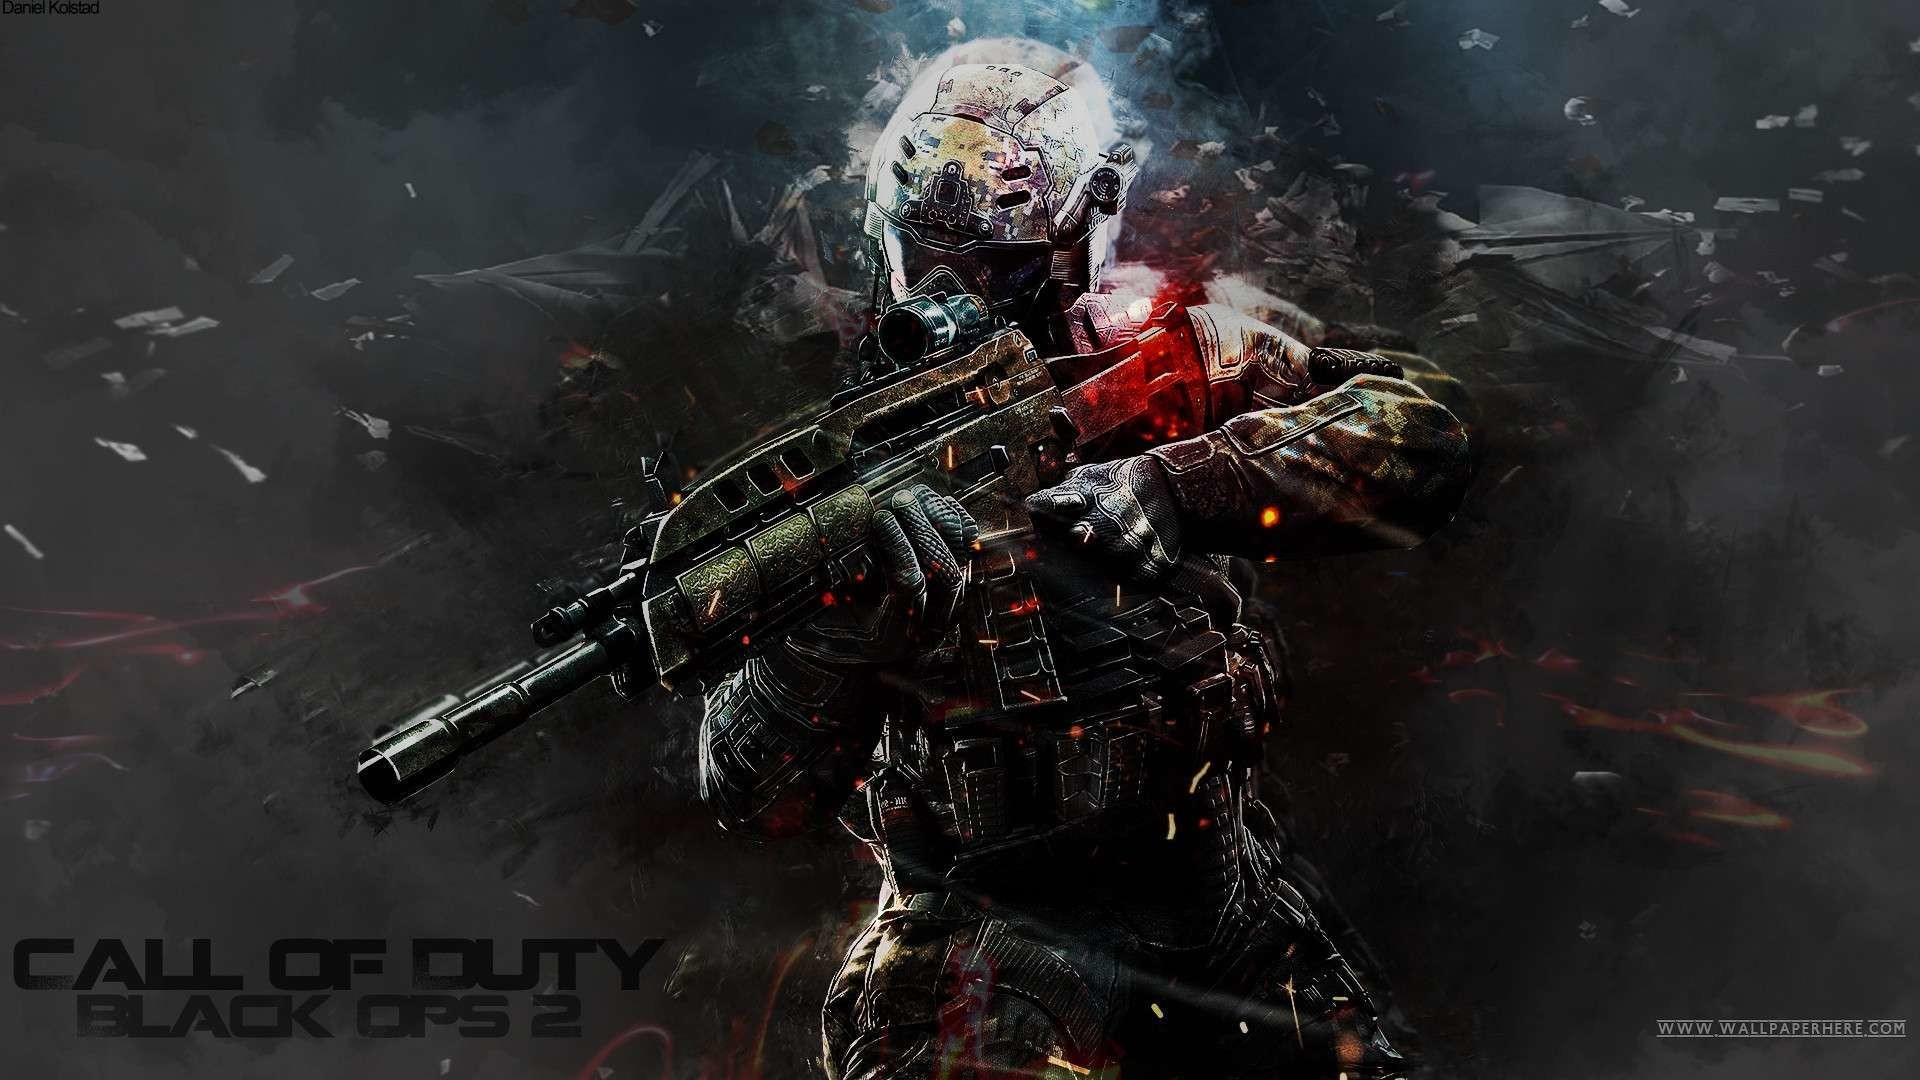 1920x1080 View Of Call Of Duty Game Desktop Wallpaper : Nice Wallpapers